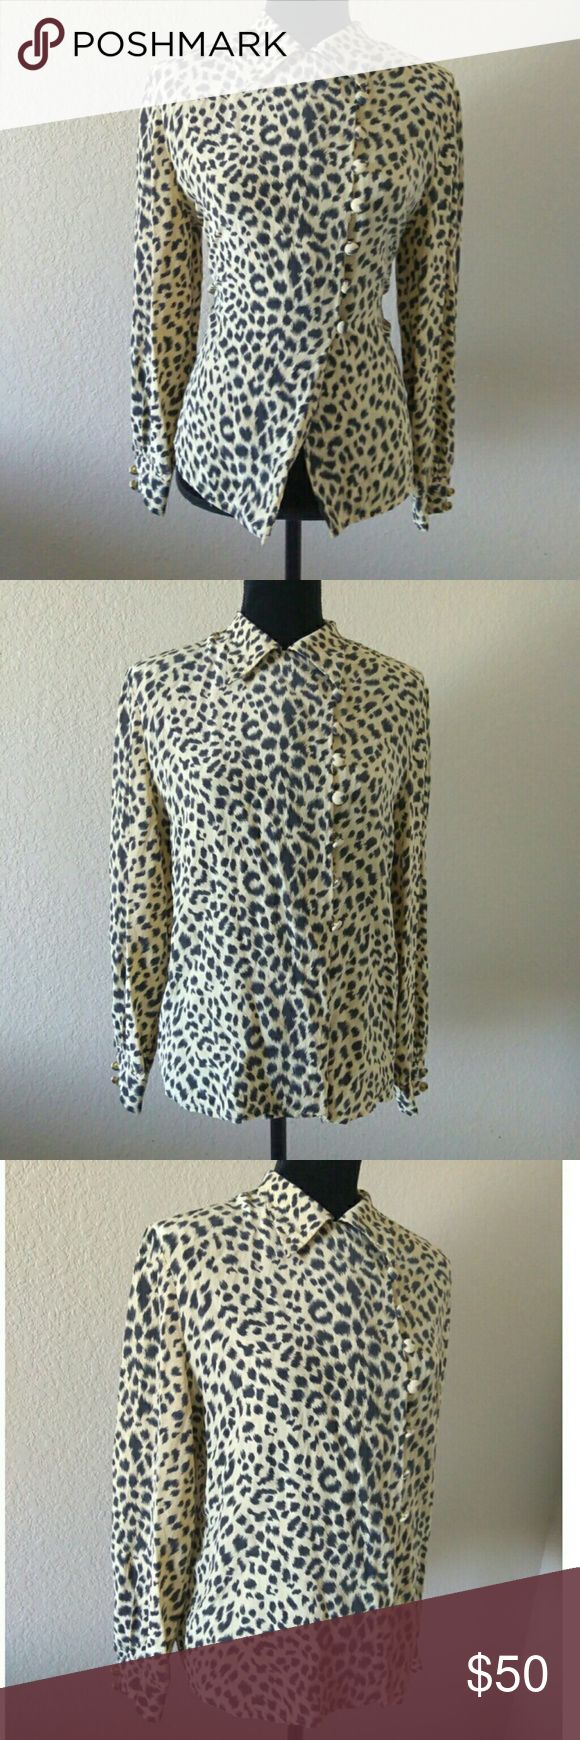 Vintage Christian Dior Silk Animal Print Blouse Stunning and one of a kind silk blouse. Authentic Vintage Christian Dior. Circa 1960-1970's. Round buttons that are not symettric in the middle more towards left. Buttons on ends of sleeves. 100% Silk. Made in Korea. Tag says size 10. Approx measurements are 20 inch chest measured from underarm to underarm. 18 inch waist, length 24 inches, arm length from shoulder hem is 21 inches. Good used vintage condition. Christian Dior Tops